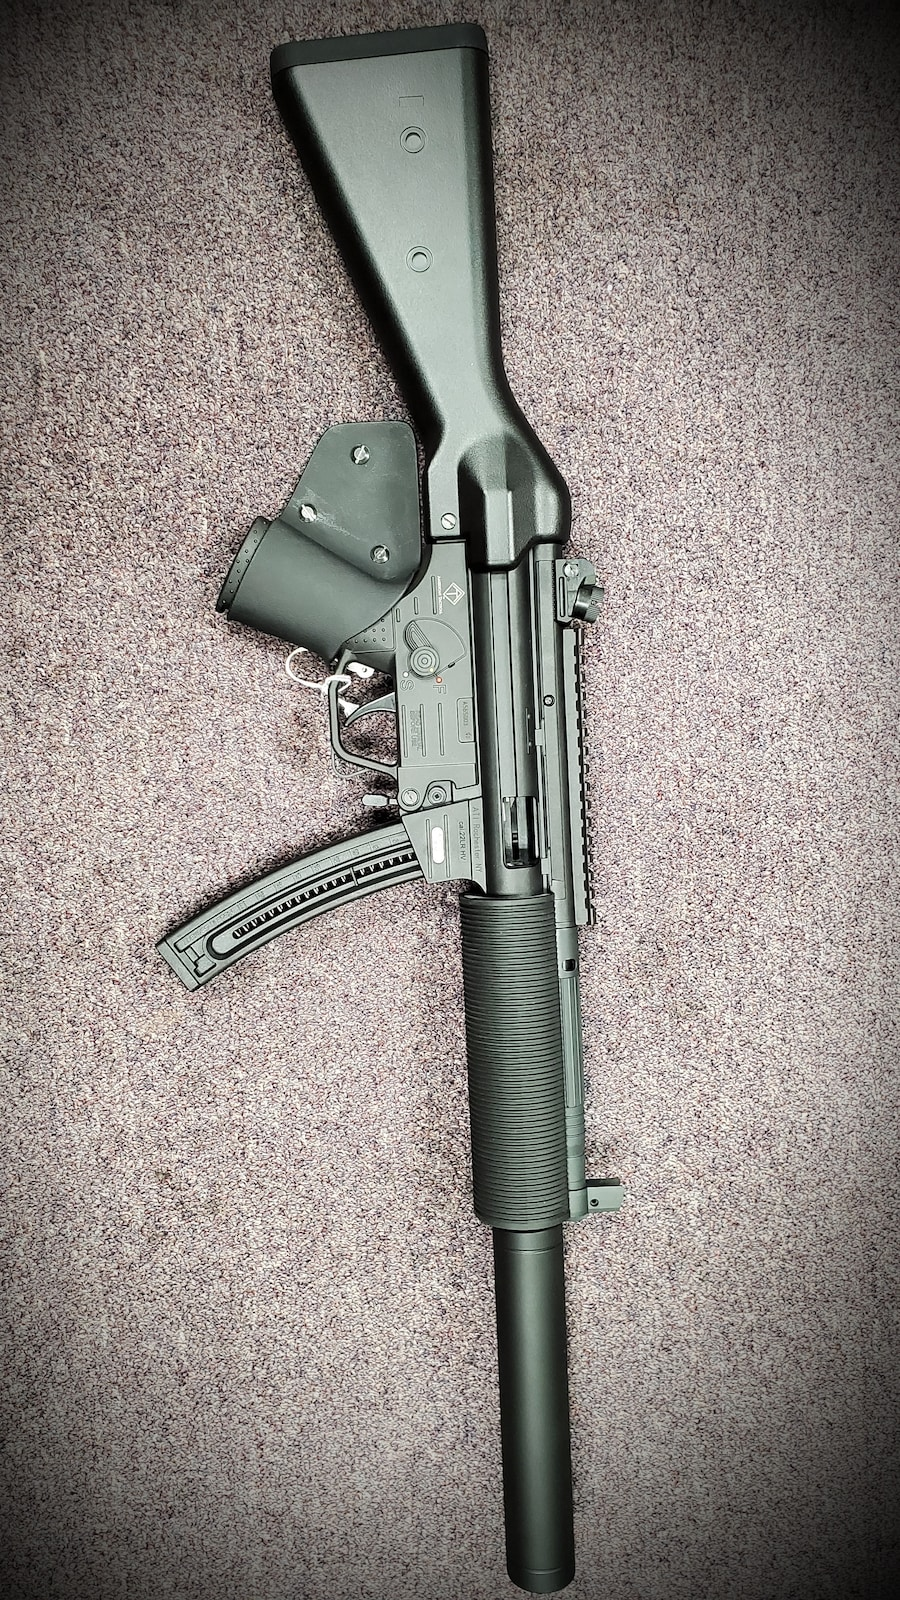 AMERICAN TACTICAL IMPORTS Featureless HK MP5 Clone gsg-522